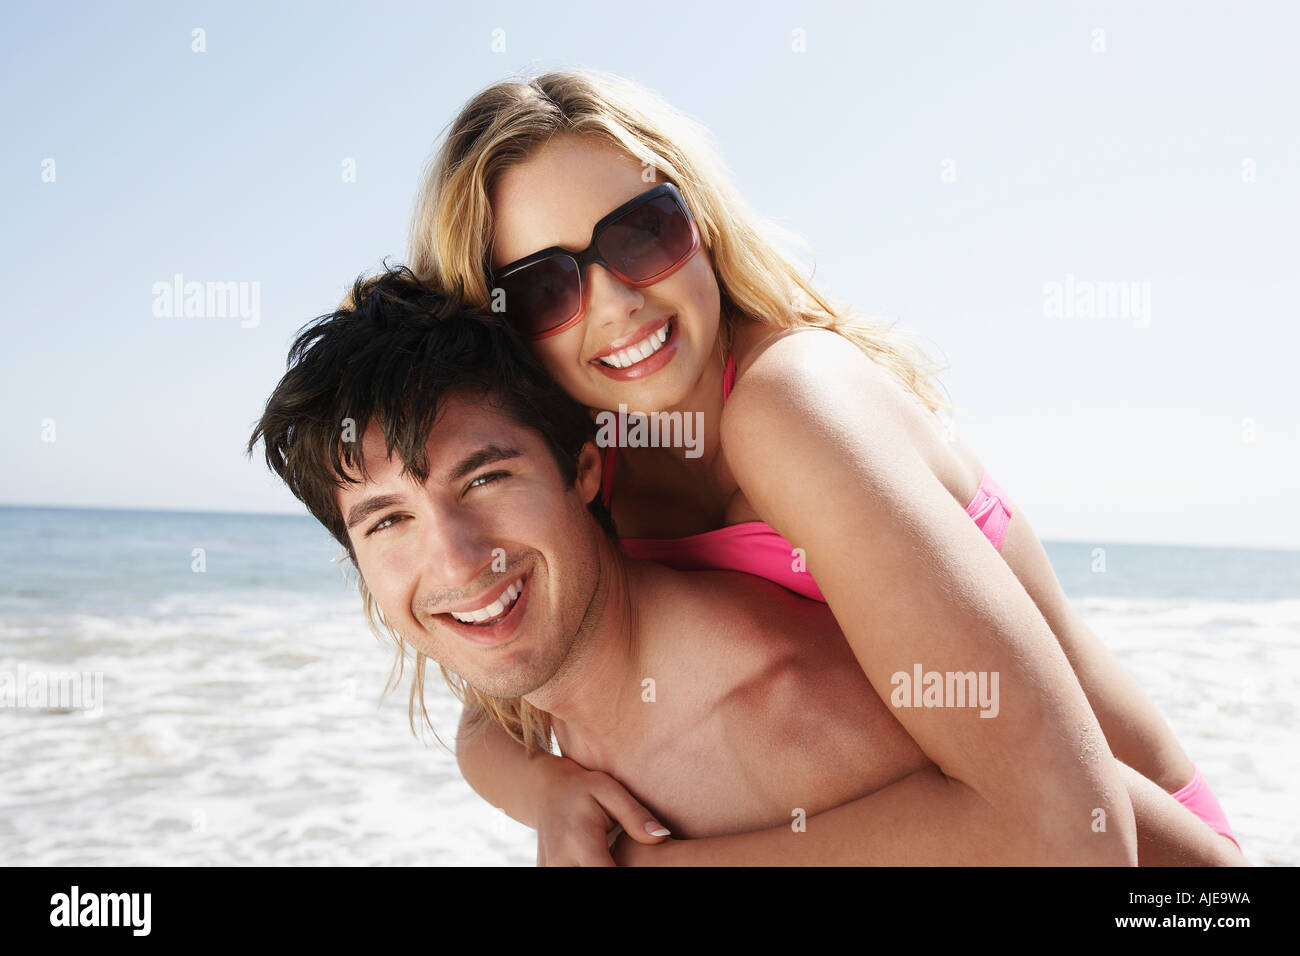 Young man with woman oh shoulders at beach, portrait - Stock Image